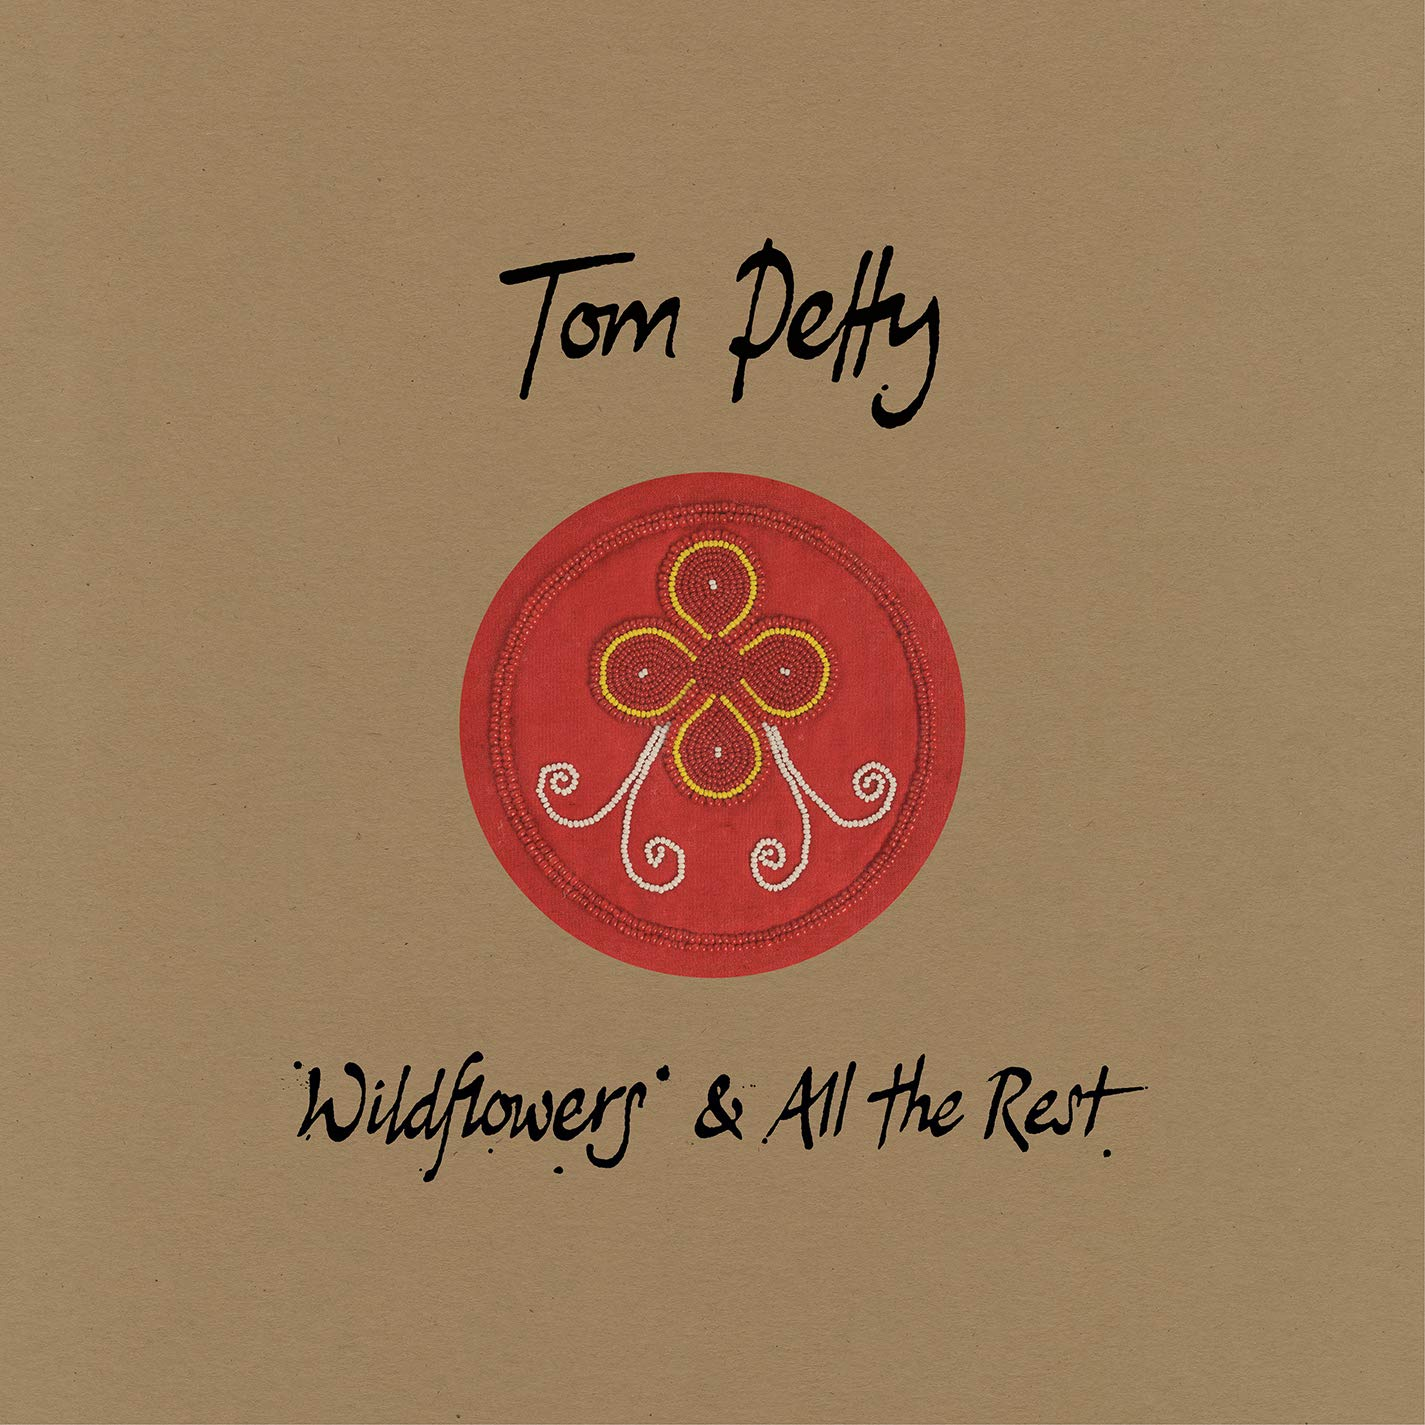 Tom Petty-Wildflowers and All The Rest-REPACK-DELUXE EDITION-2CD-FLAC-2020-401